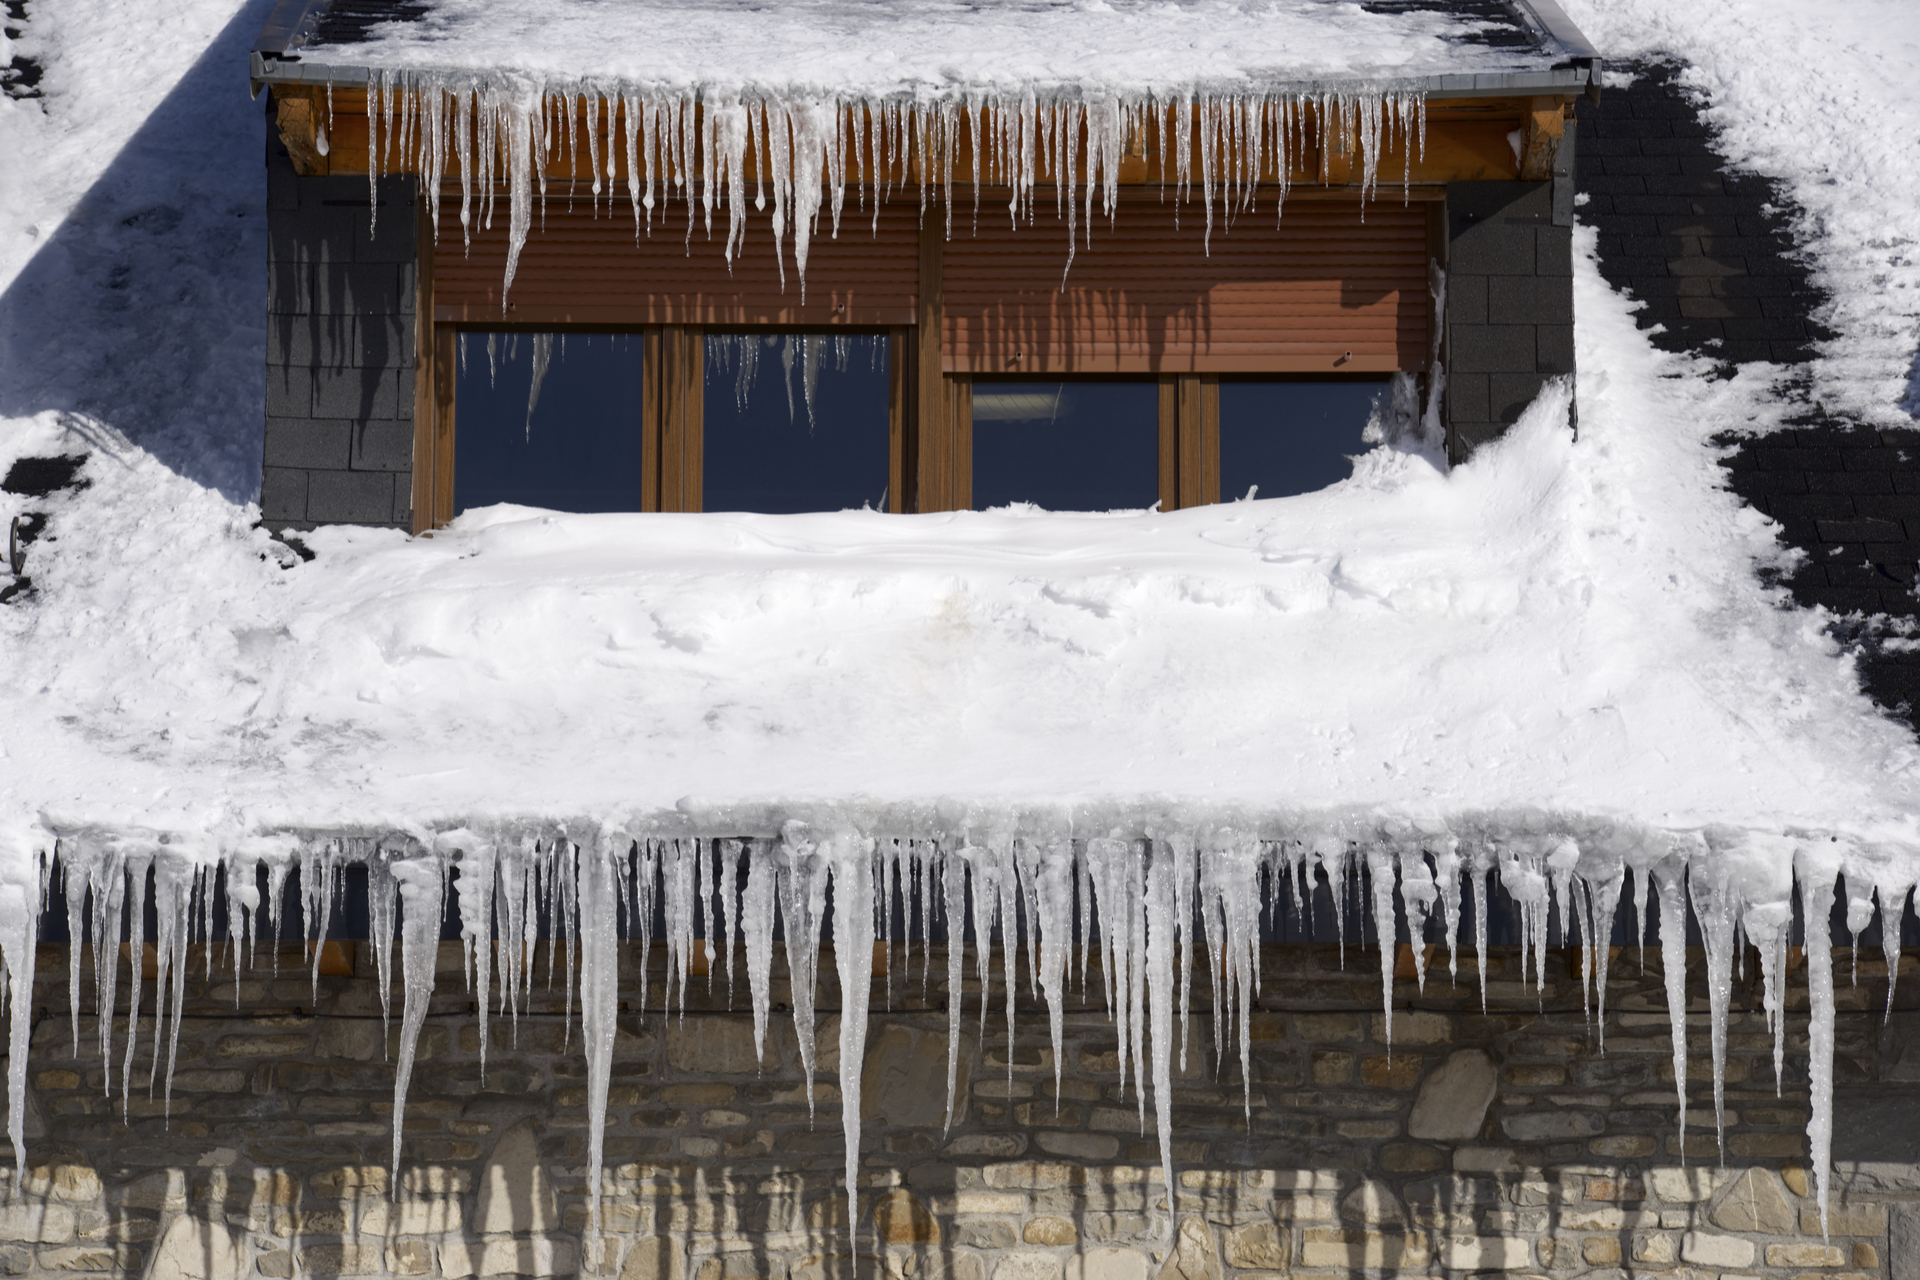 Icicles on the roof of a house